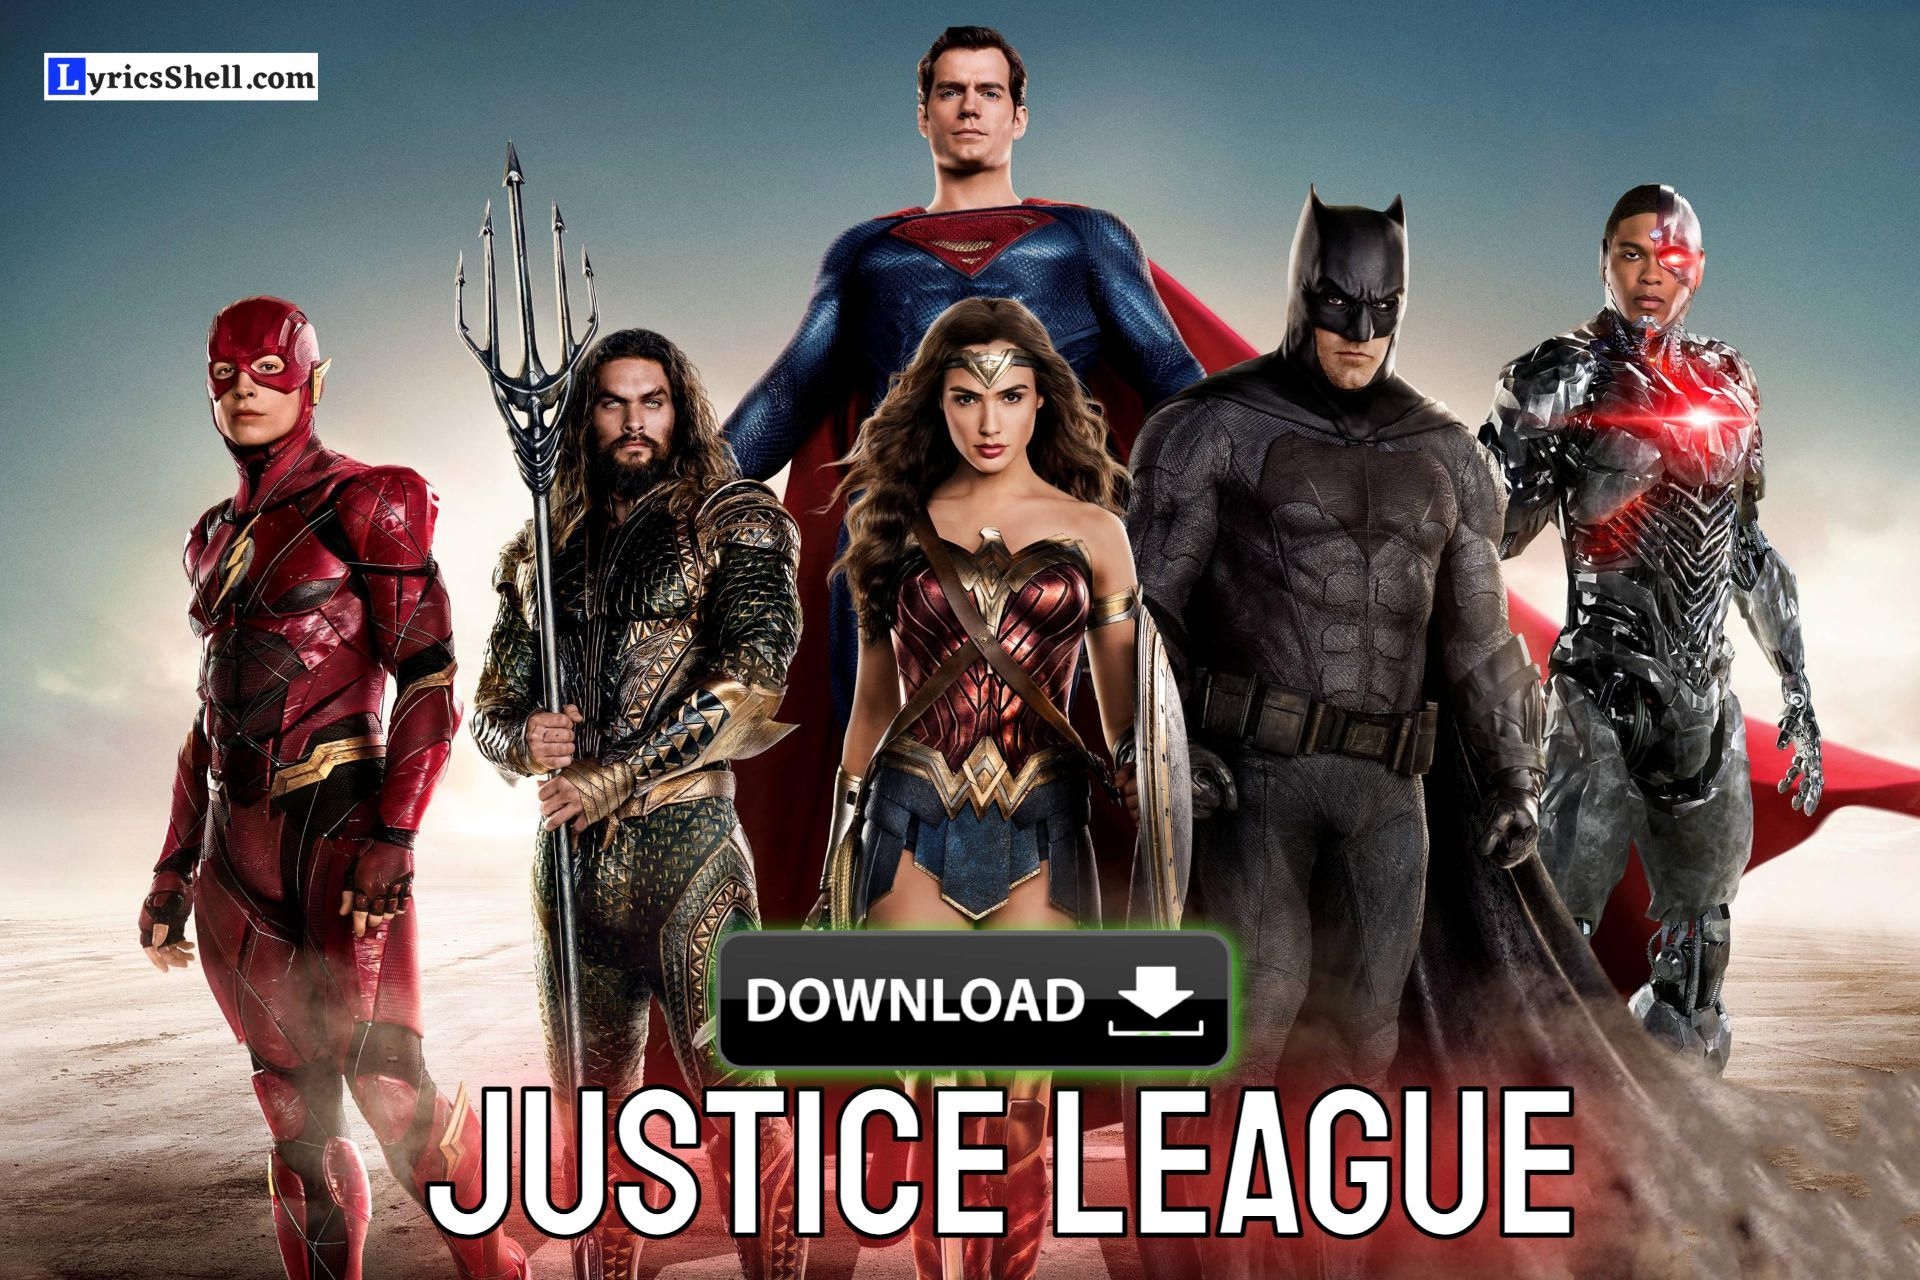 Justice League Snyder Cut Tamil Dubbed Tamilrockers, Filmyzilla, 123Movies, Isaimini, Movierulz Trends on Google